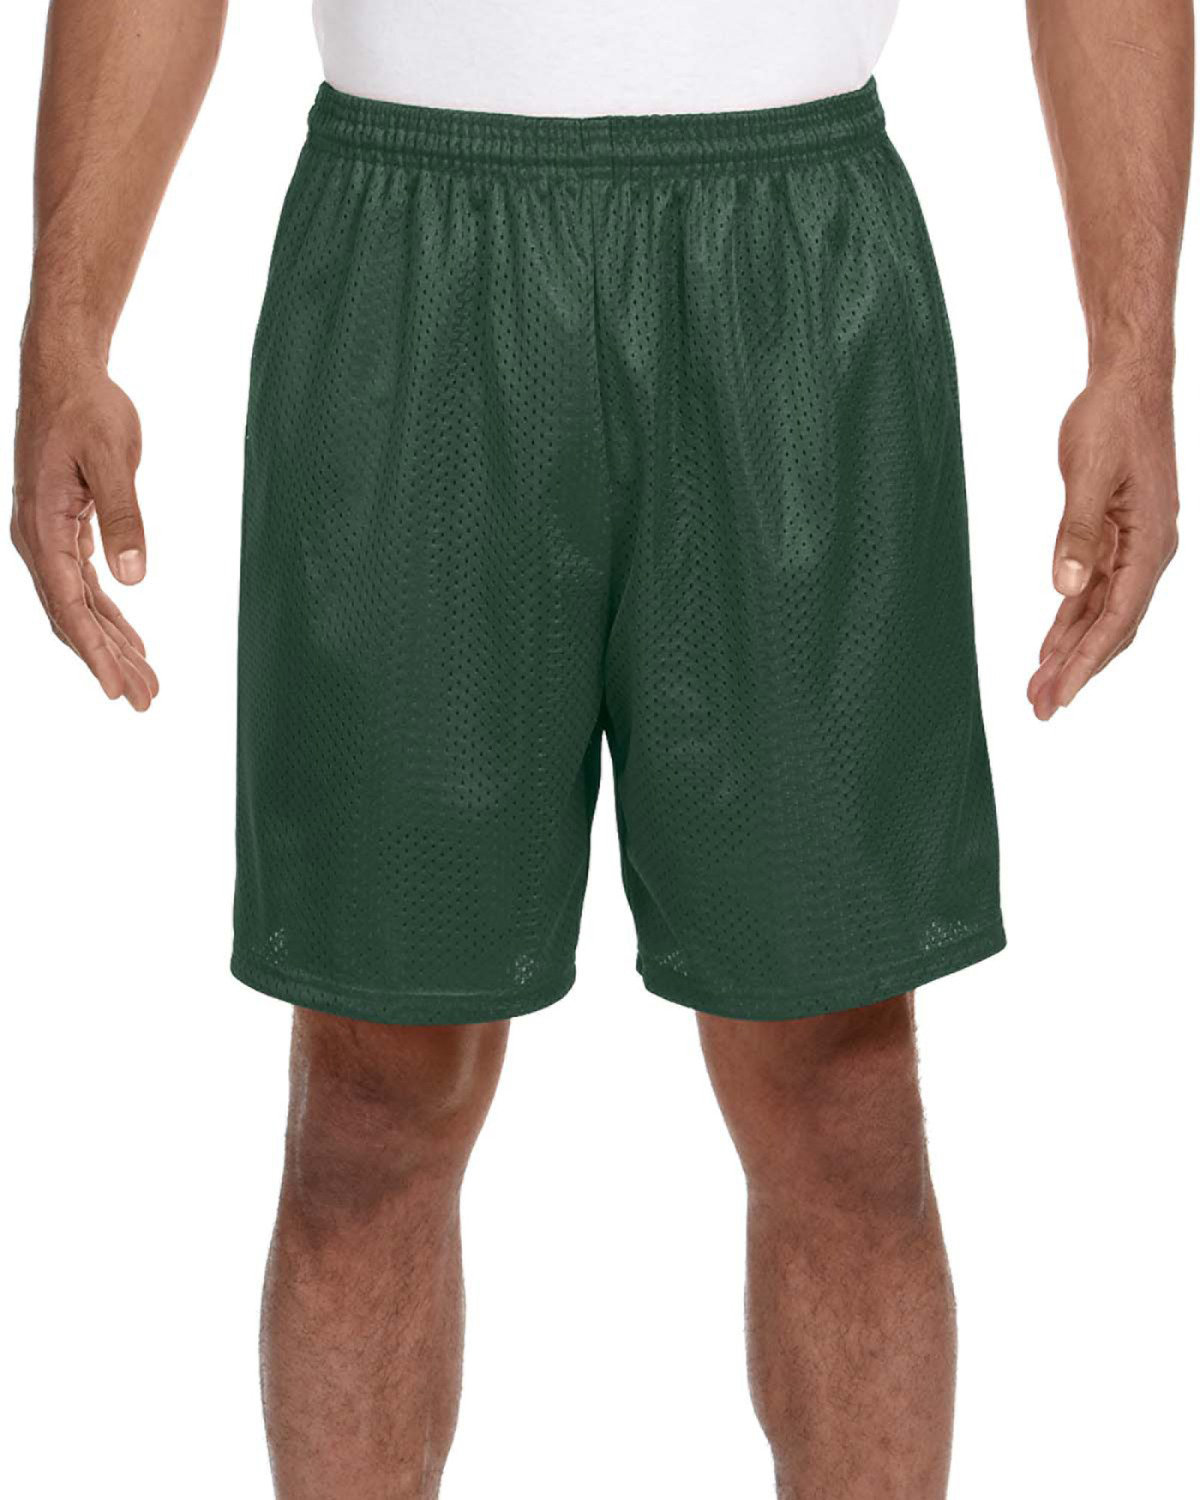 A4 Adult Seven Inch Inseam Mesh Short FOREST GREEN